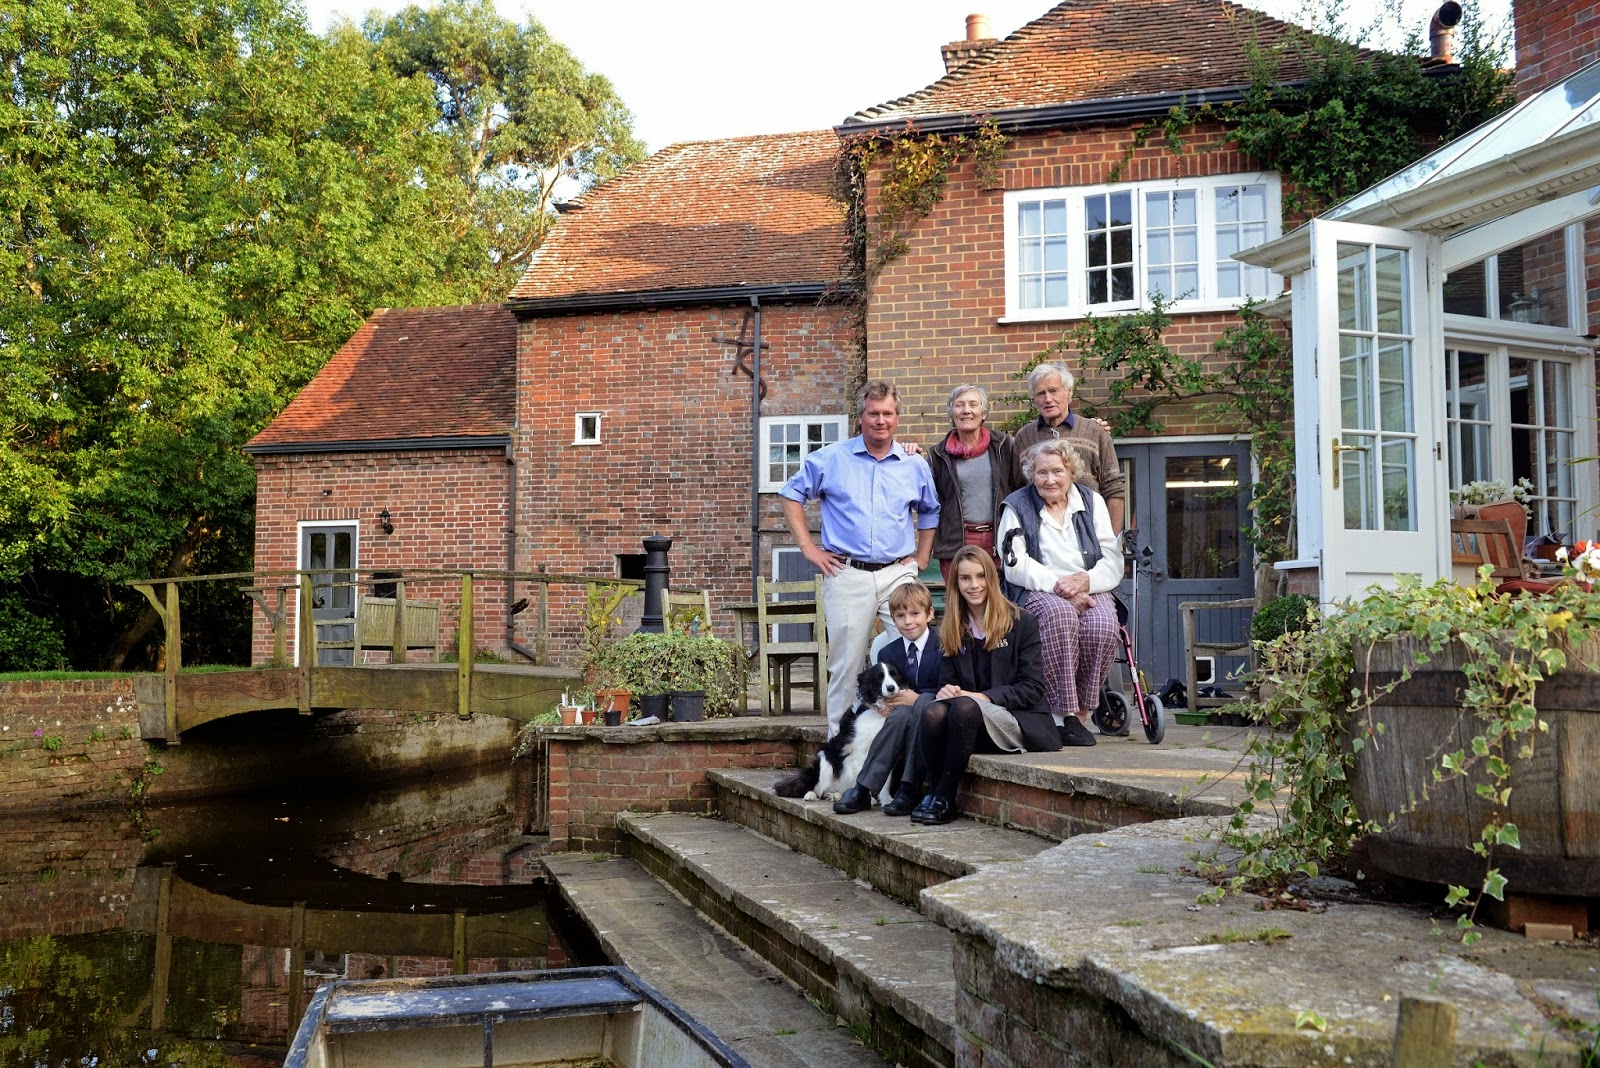 Efford Mill in Lymington has drastically reduced their energy costs.